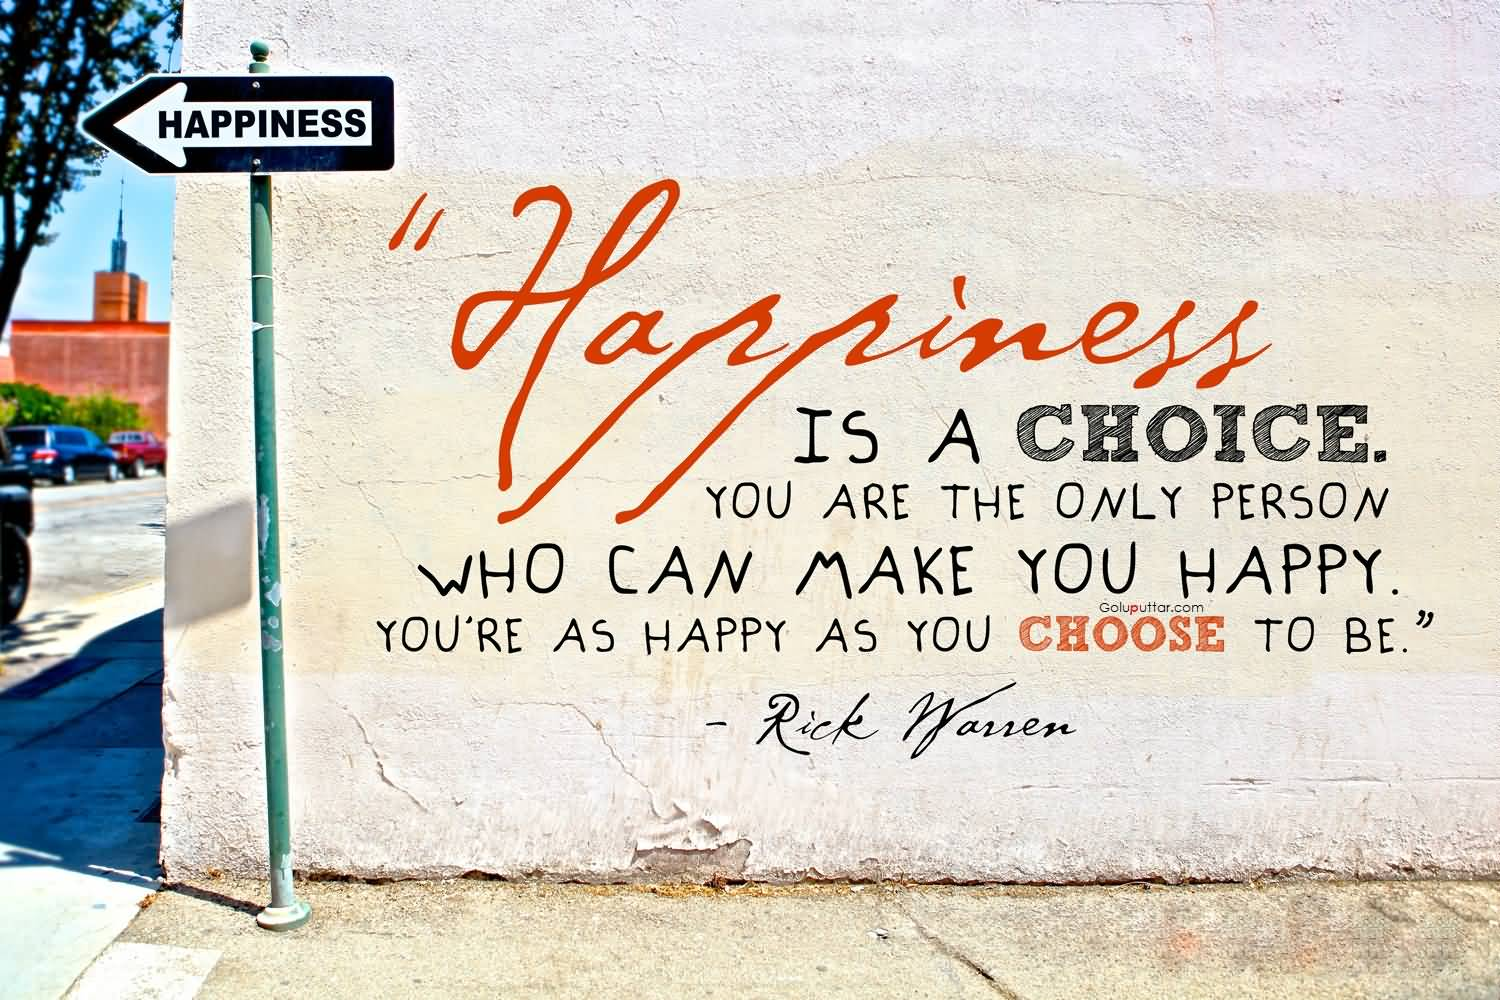 Happiness is a choice. You are the only person who can make you happy. You're as happy as you choose to be. Rick Warren